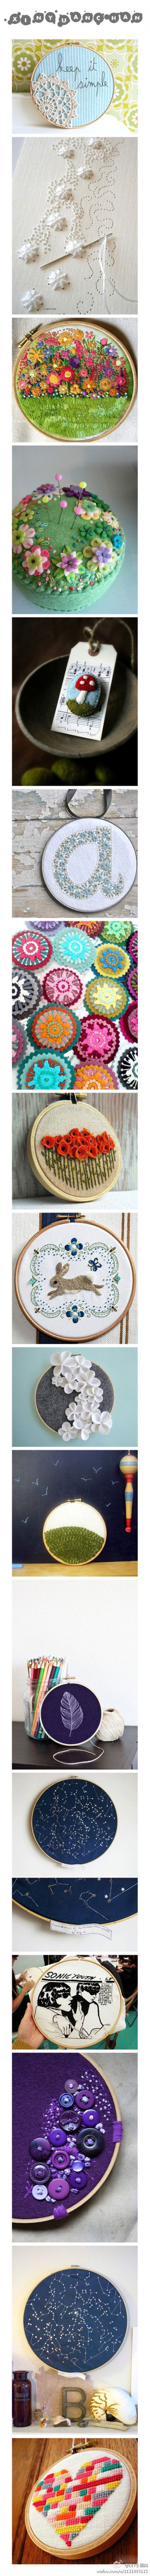 best embroidery stumpworkbrazilian embroidery images on pinterest